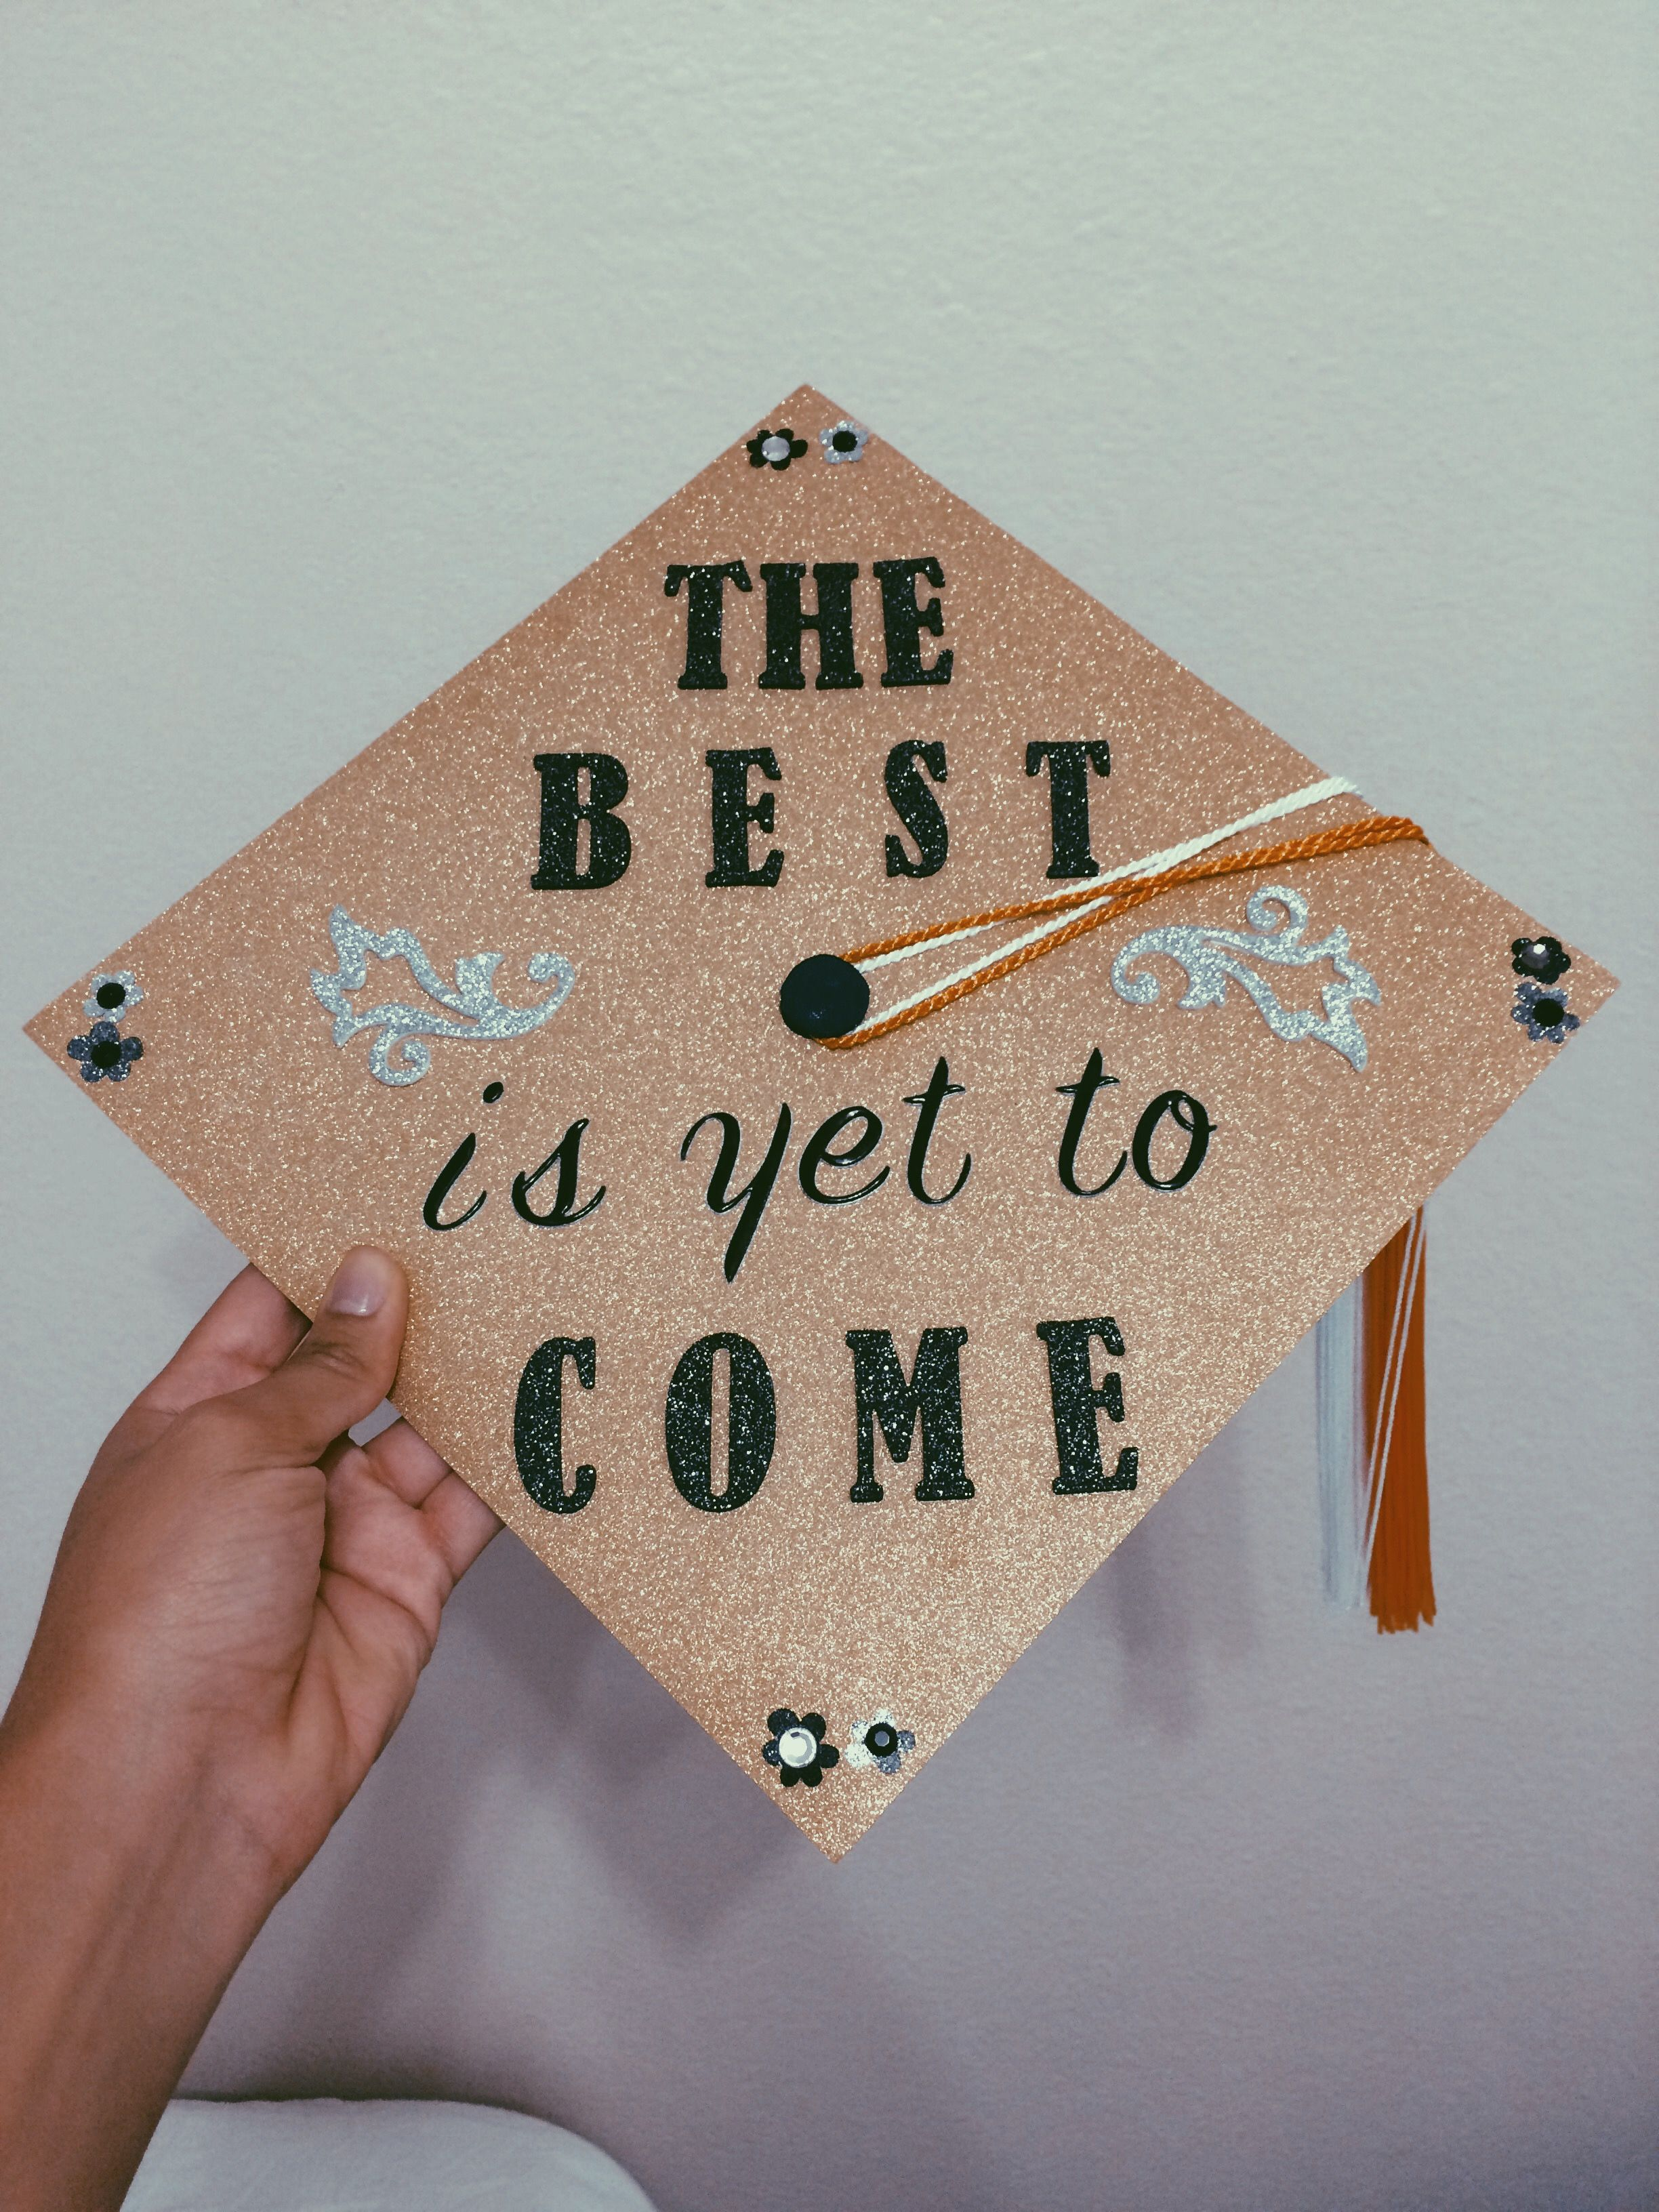 Modern Is Yet To Come Graduation G Glitter Scrapbook Paper Andstickers Purchased At Michaels Is Yet To Come Graduation G Glitter Scrapbook Paper ideas How To Decorate A Graduation Cap